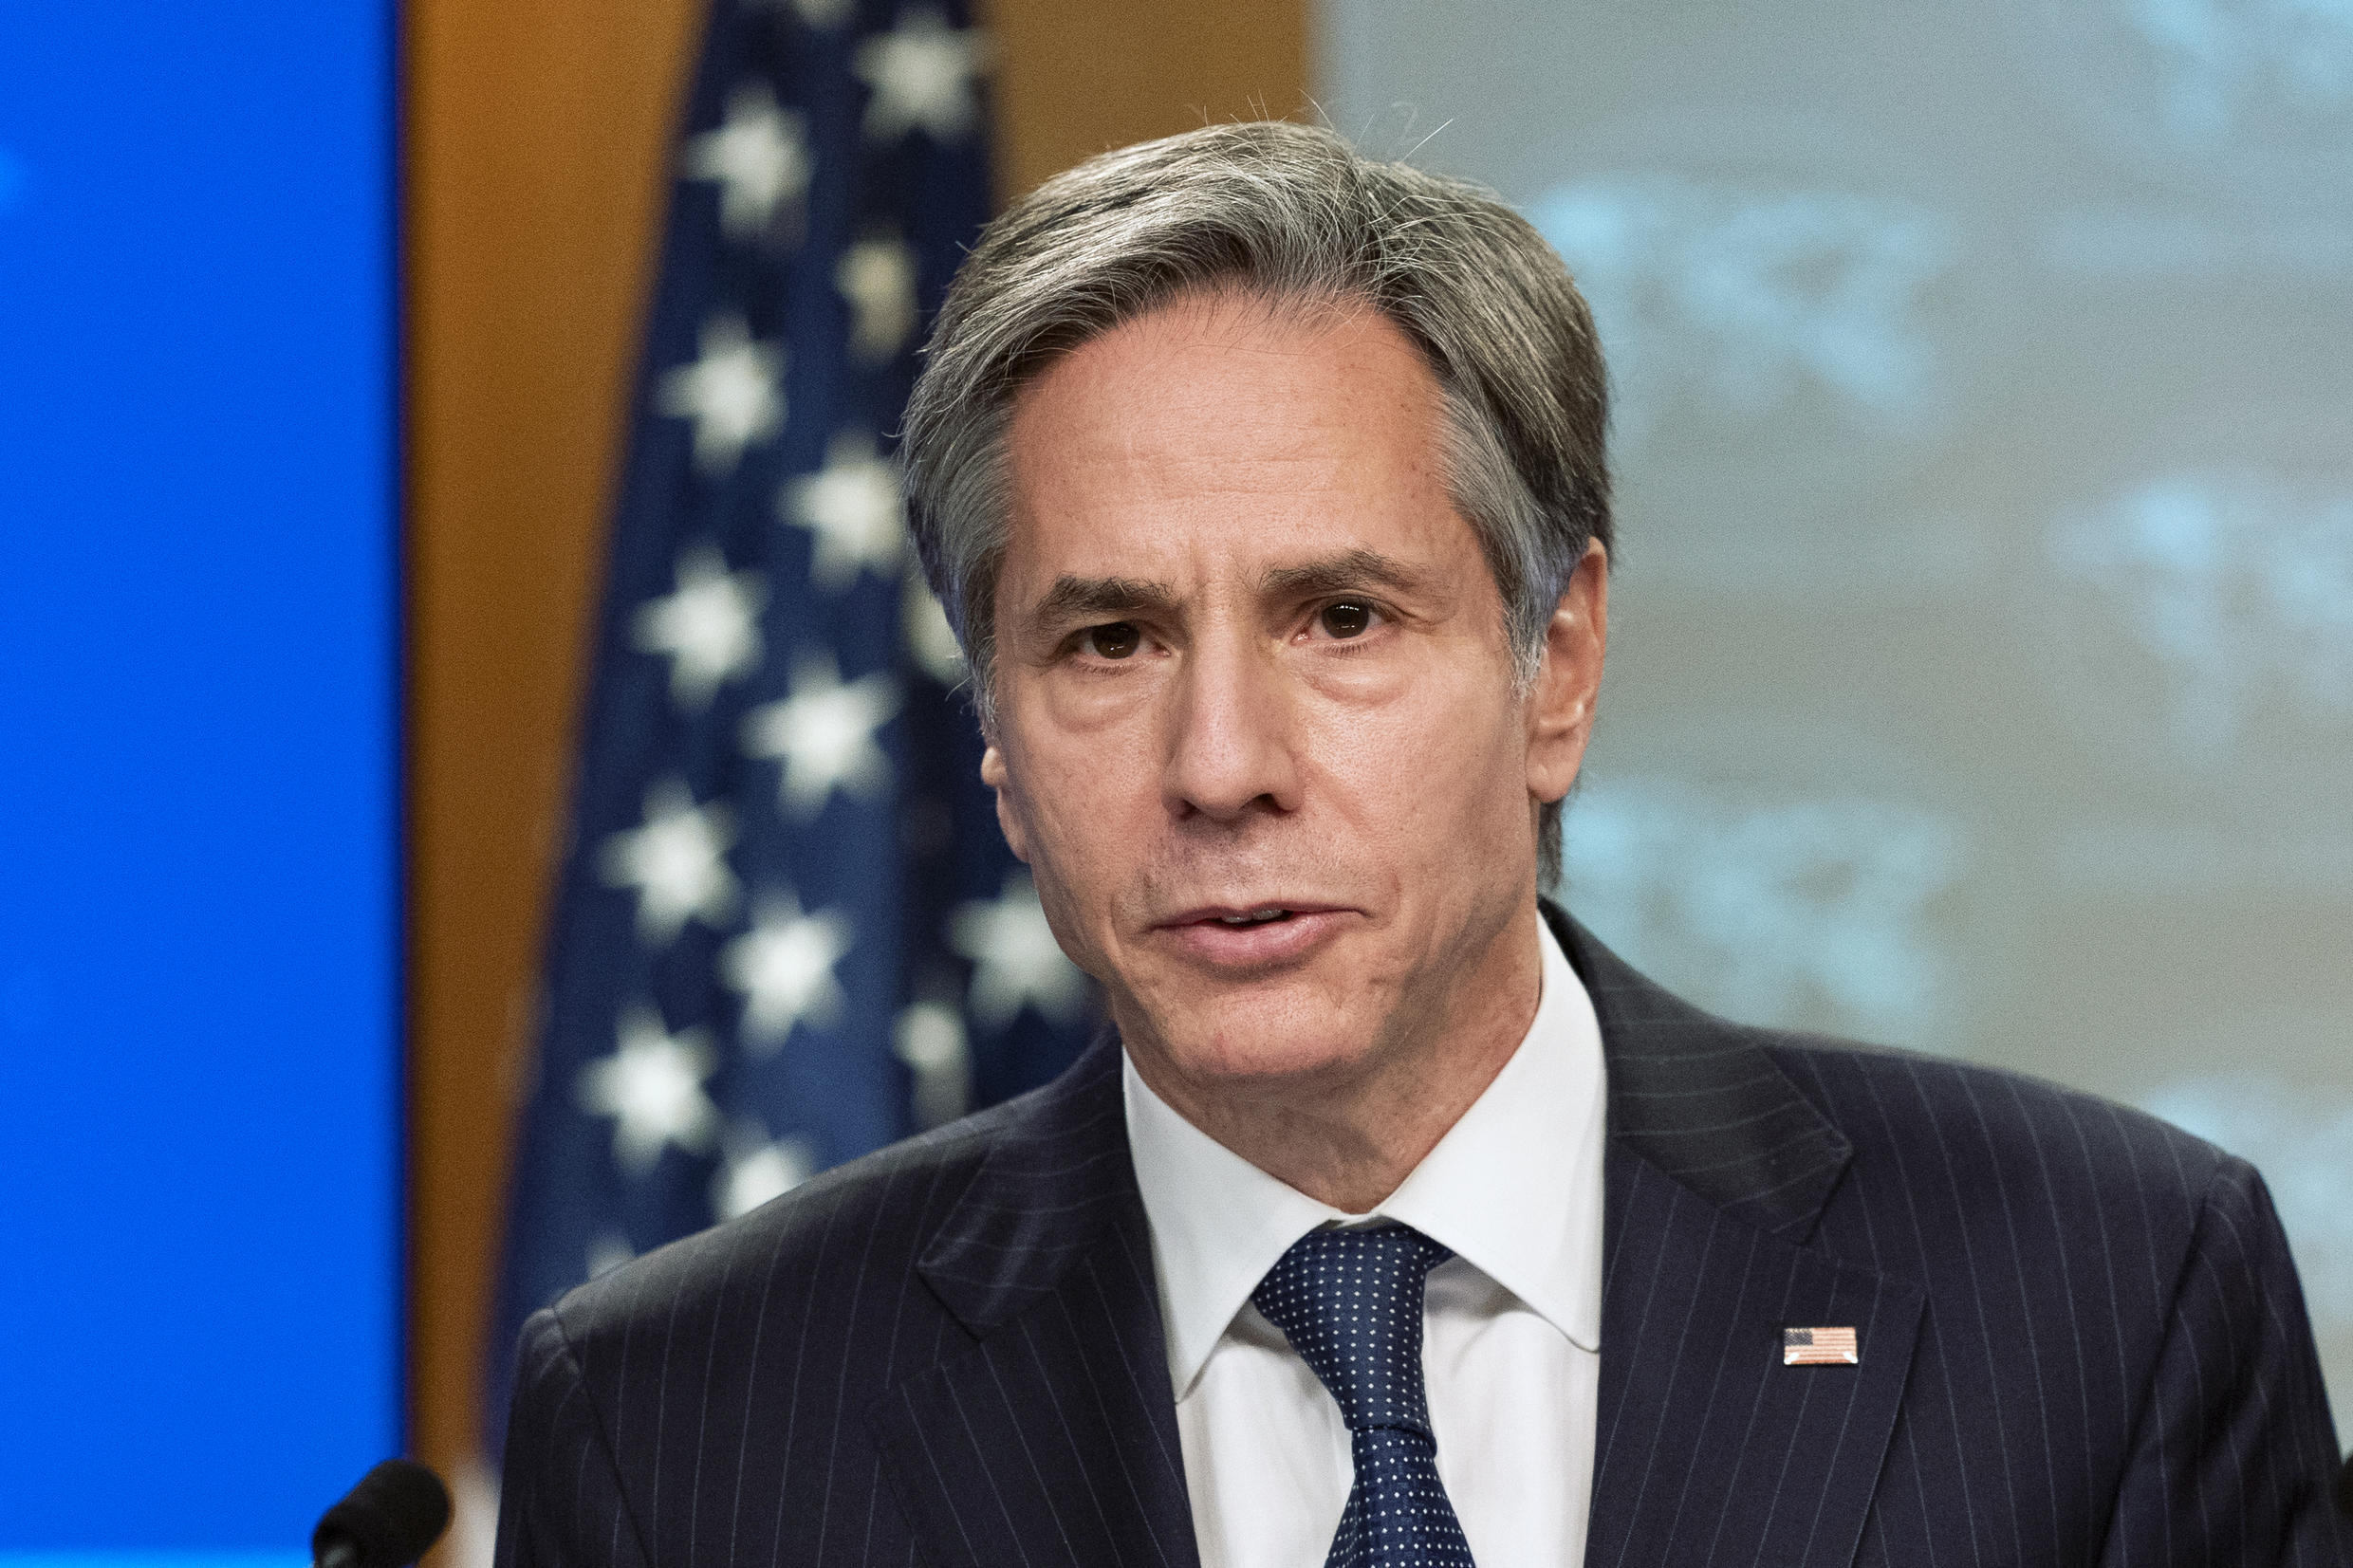 Secretary of State Antony Blinken has said the United States is 'gravely concerned' over the situation in Ethiopia's conflict-hit Tigray region